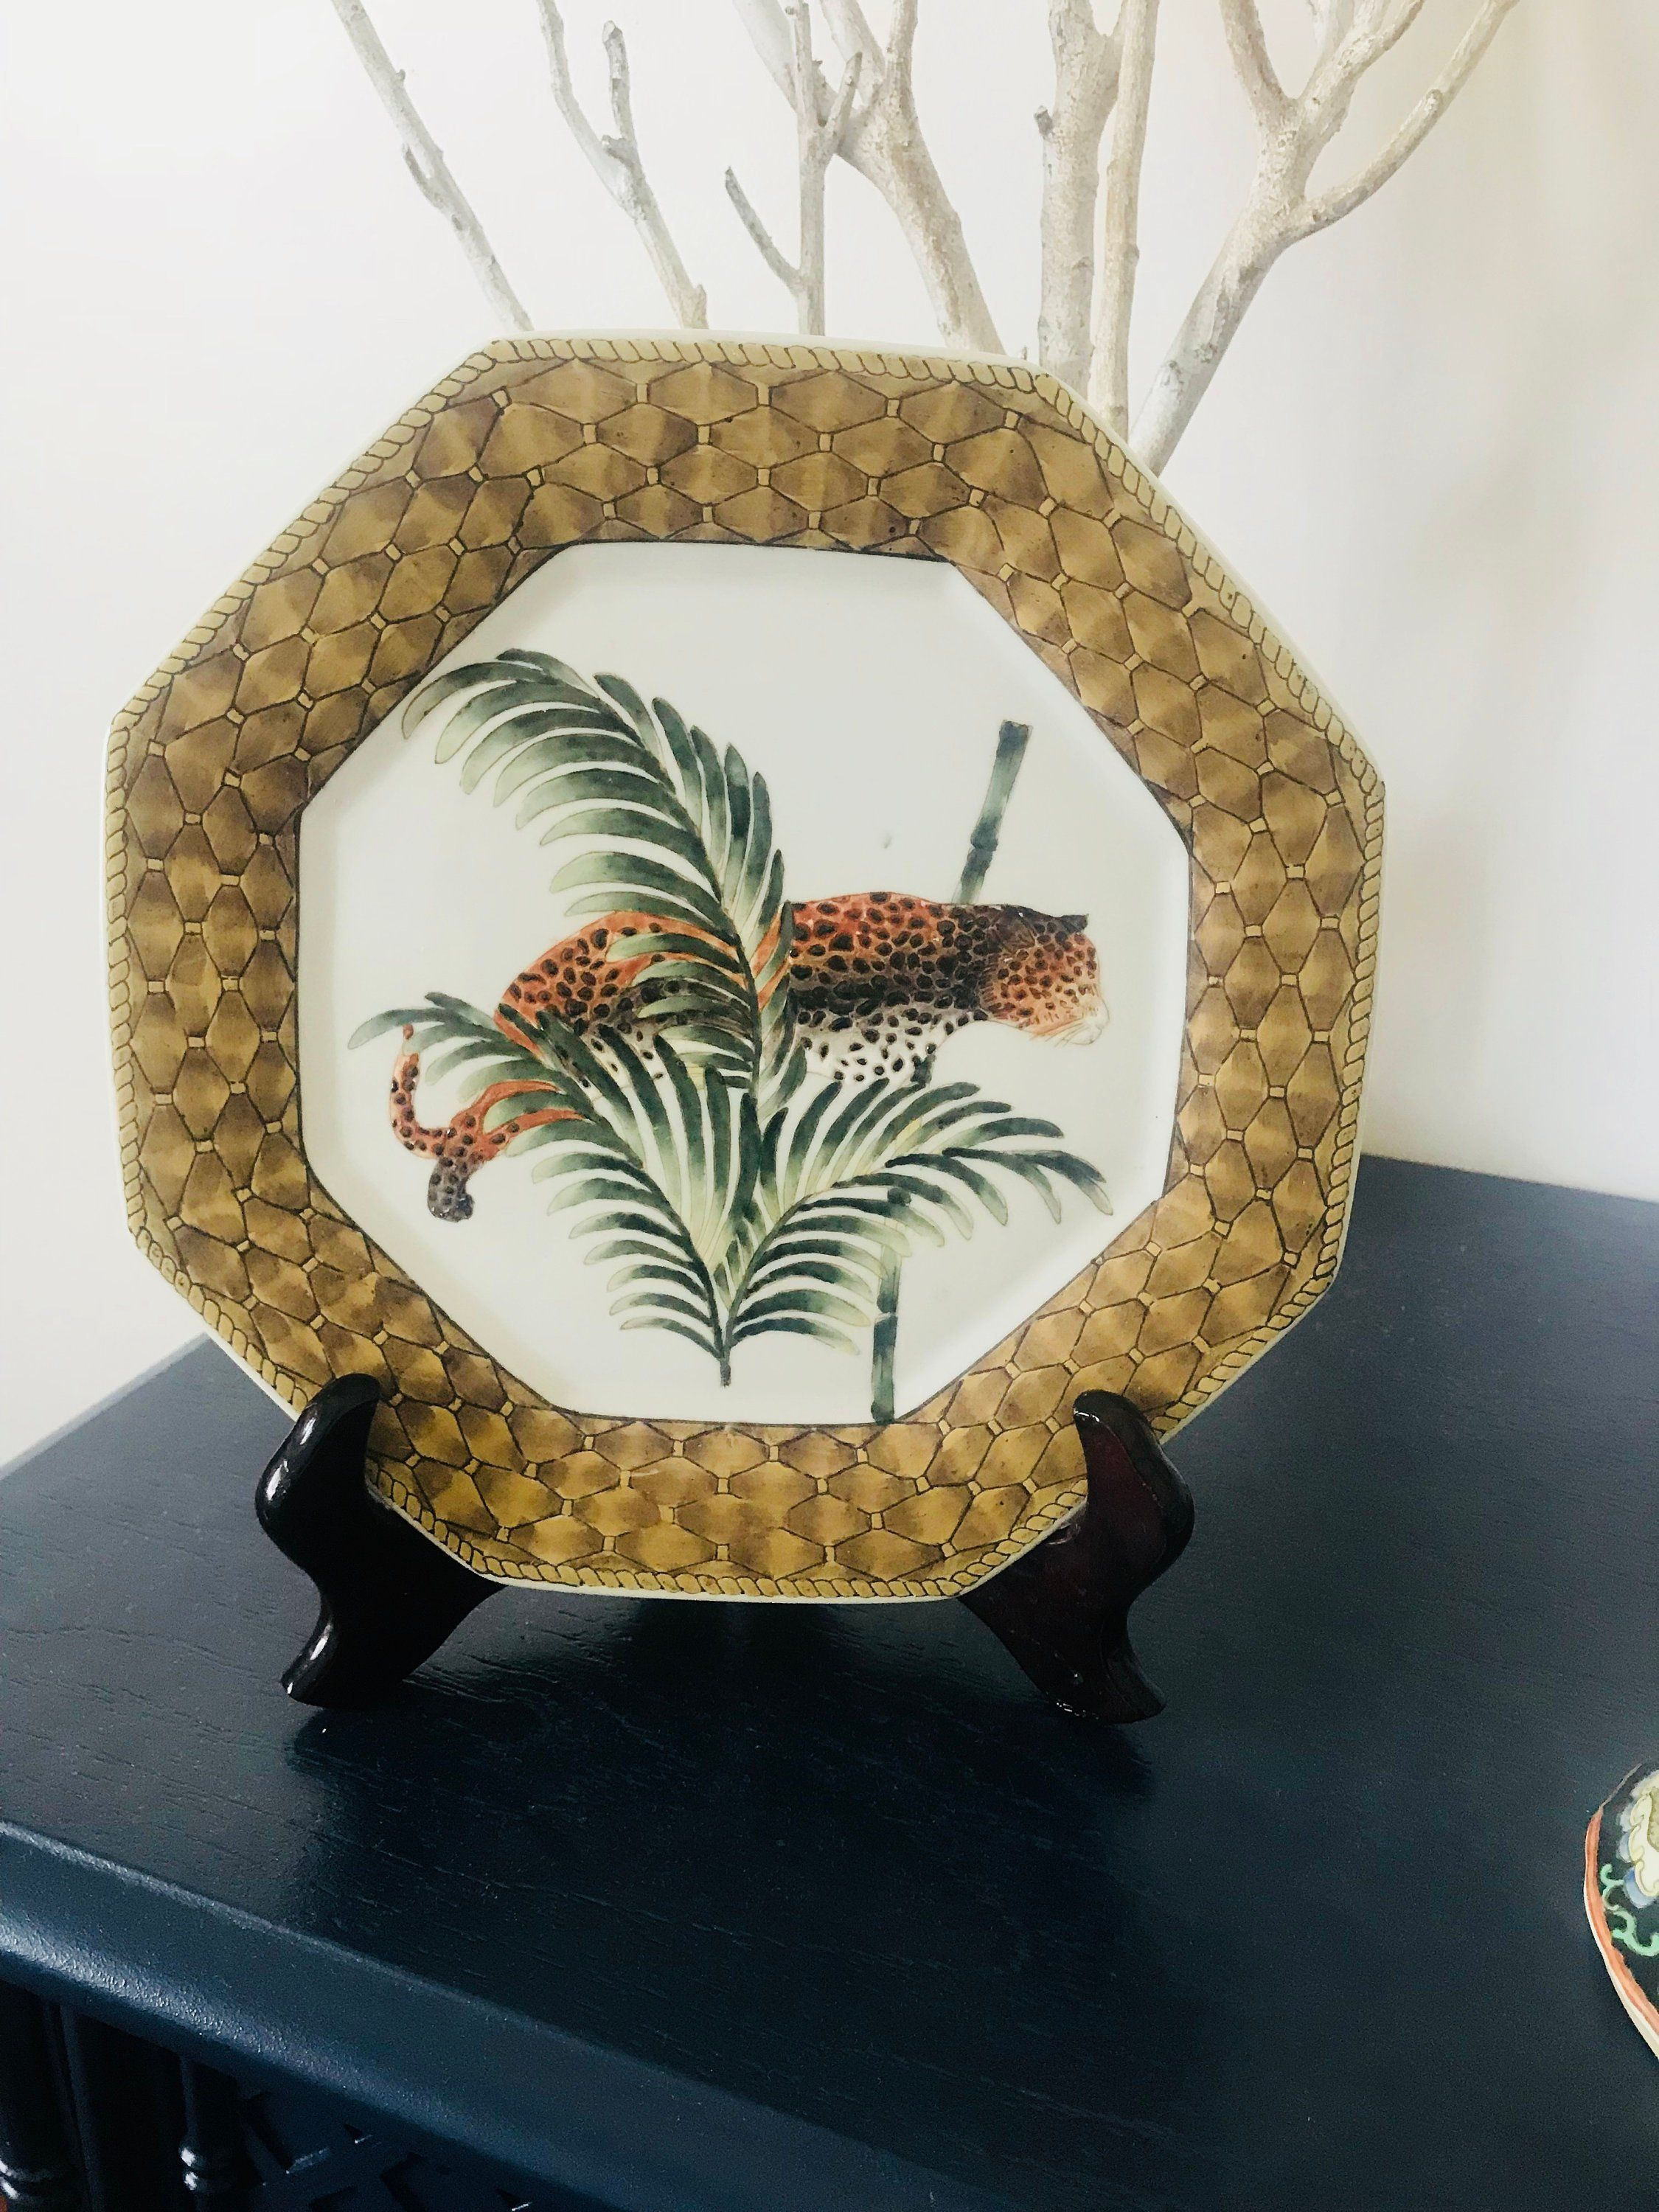 Asian Decorative Plate Chinoiserie Style Leopard Bamboo Palm